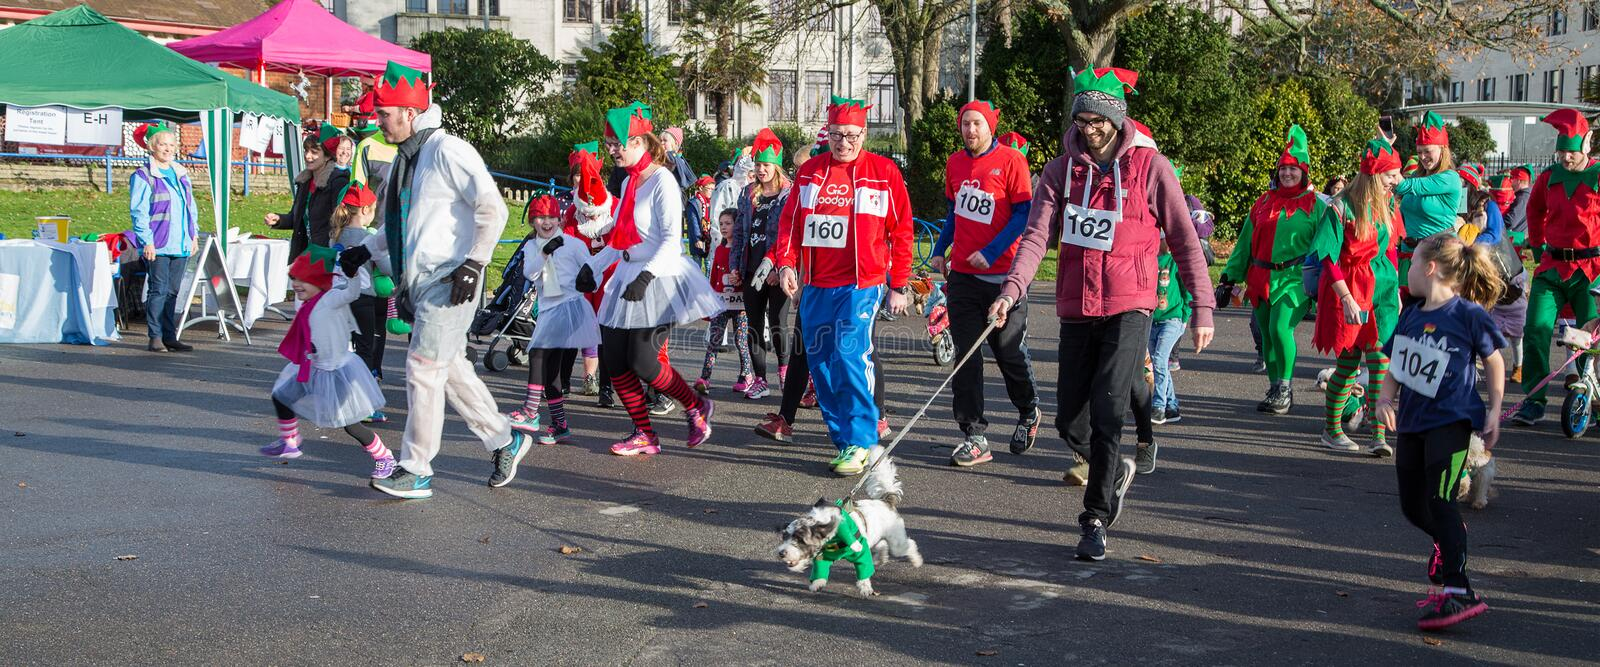 Parade of Christmas elves stock image